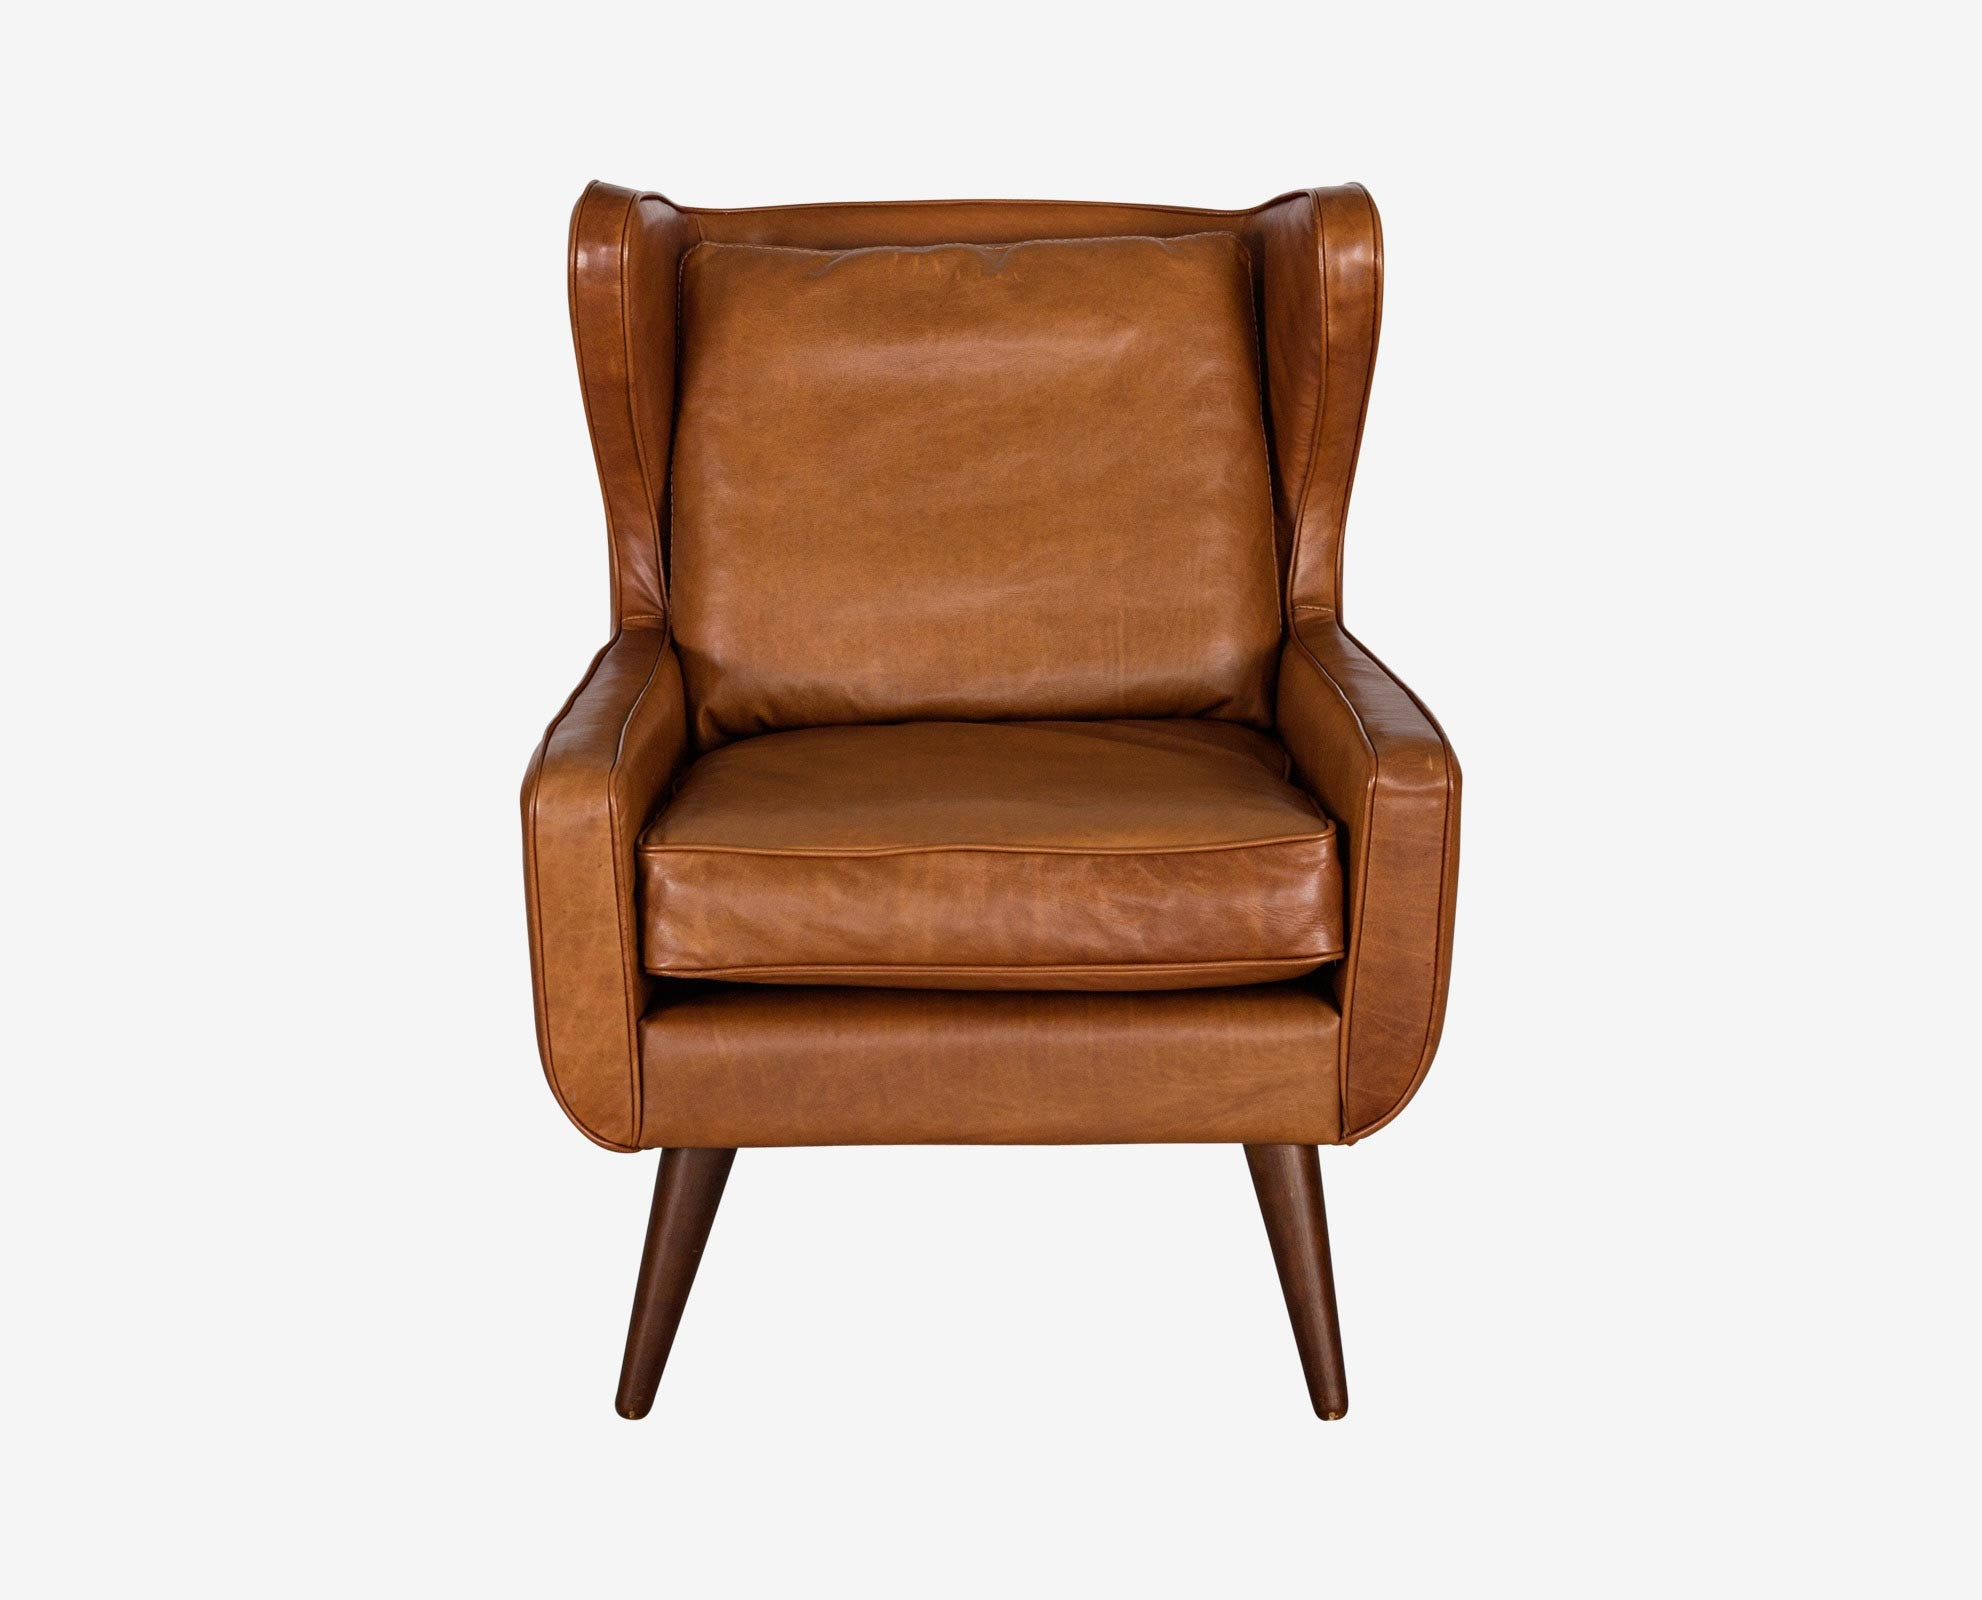 Premium wingback style modern leather chair